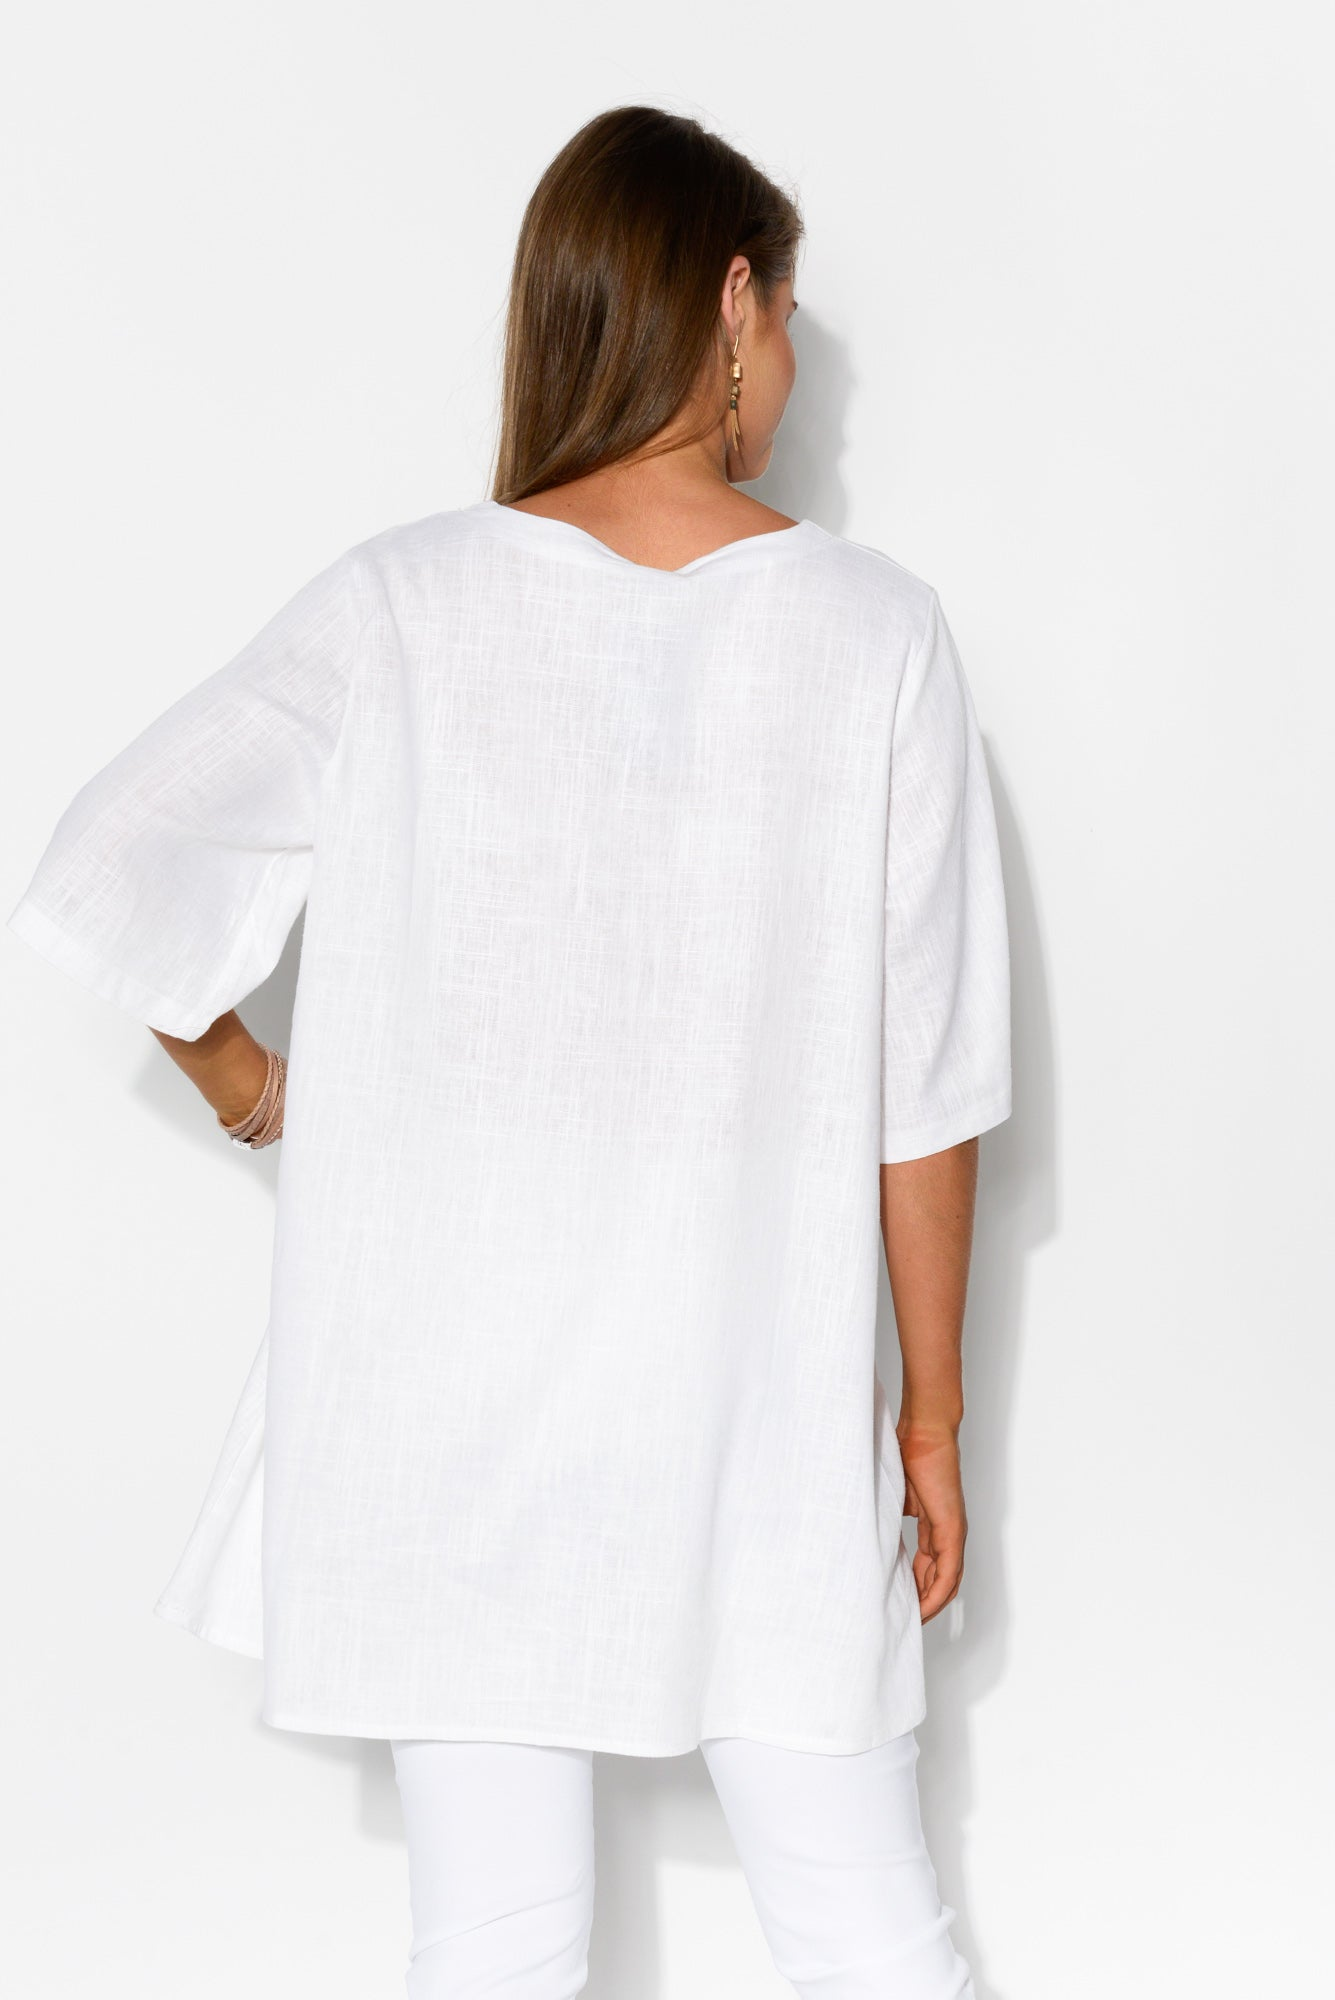 Neptune White Linen Cotton Top